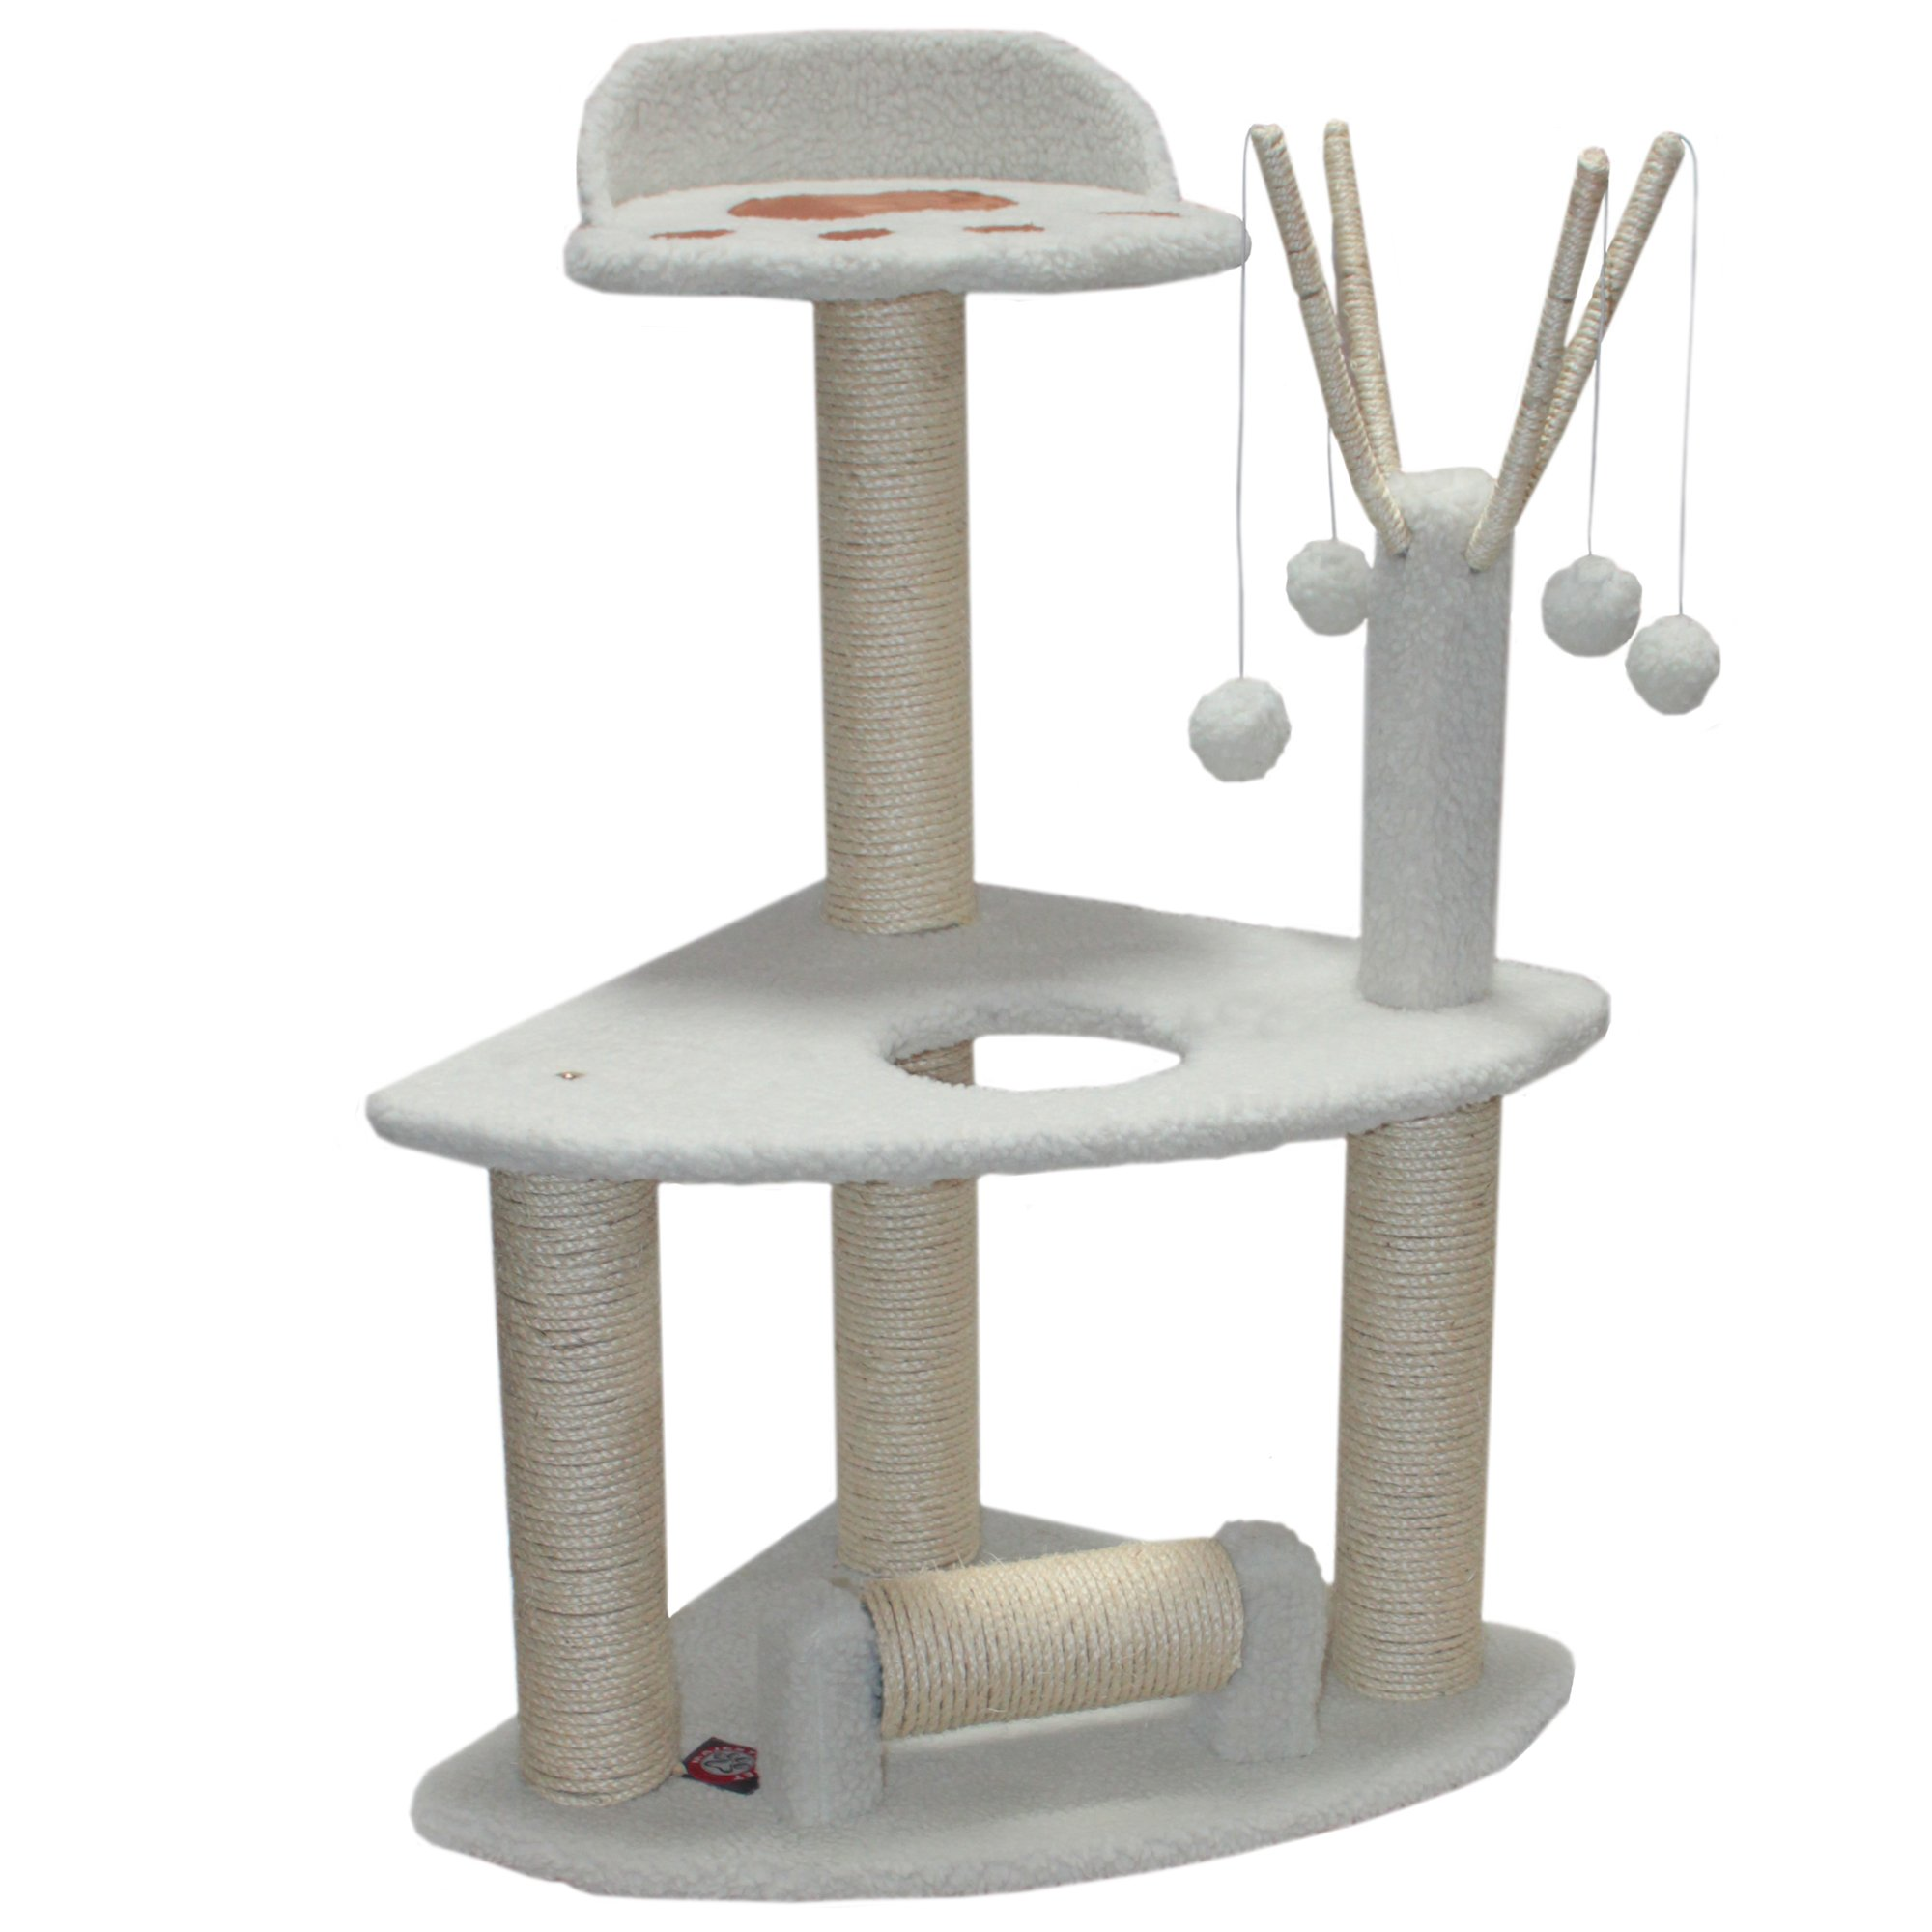 Majestic Pet Products 36 inch Cream Bungalow Cat Furniture Condo House Scratcher Multi Level Pet Activity Tree